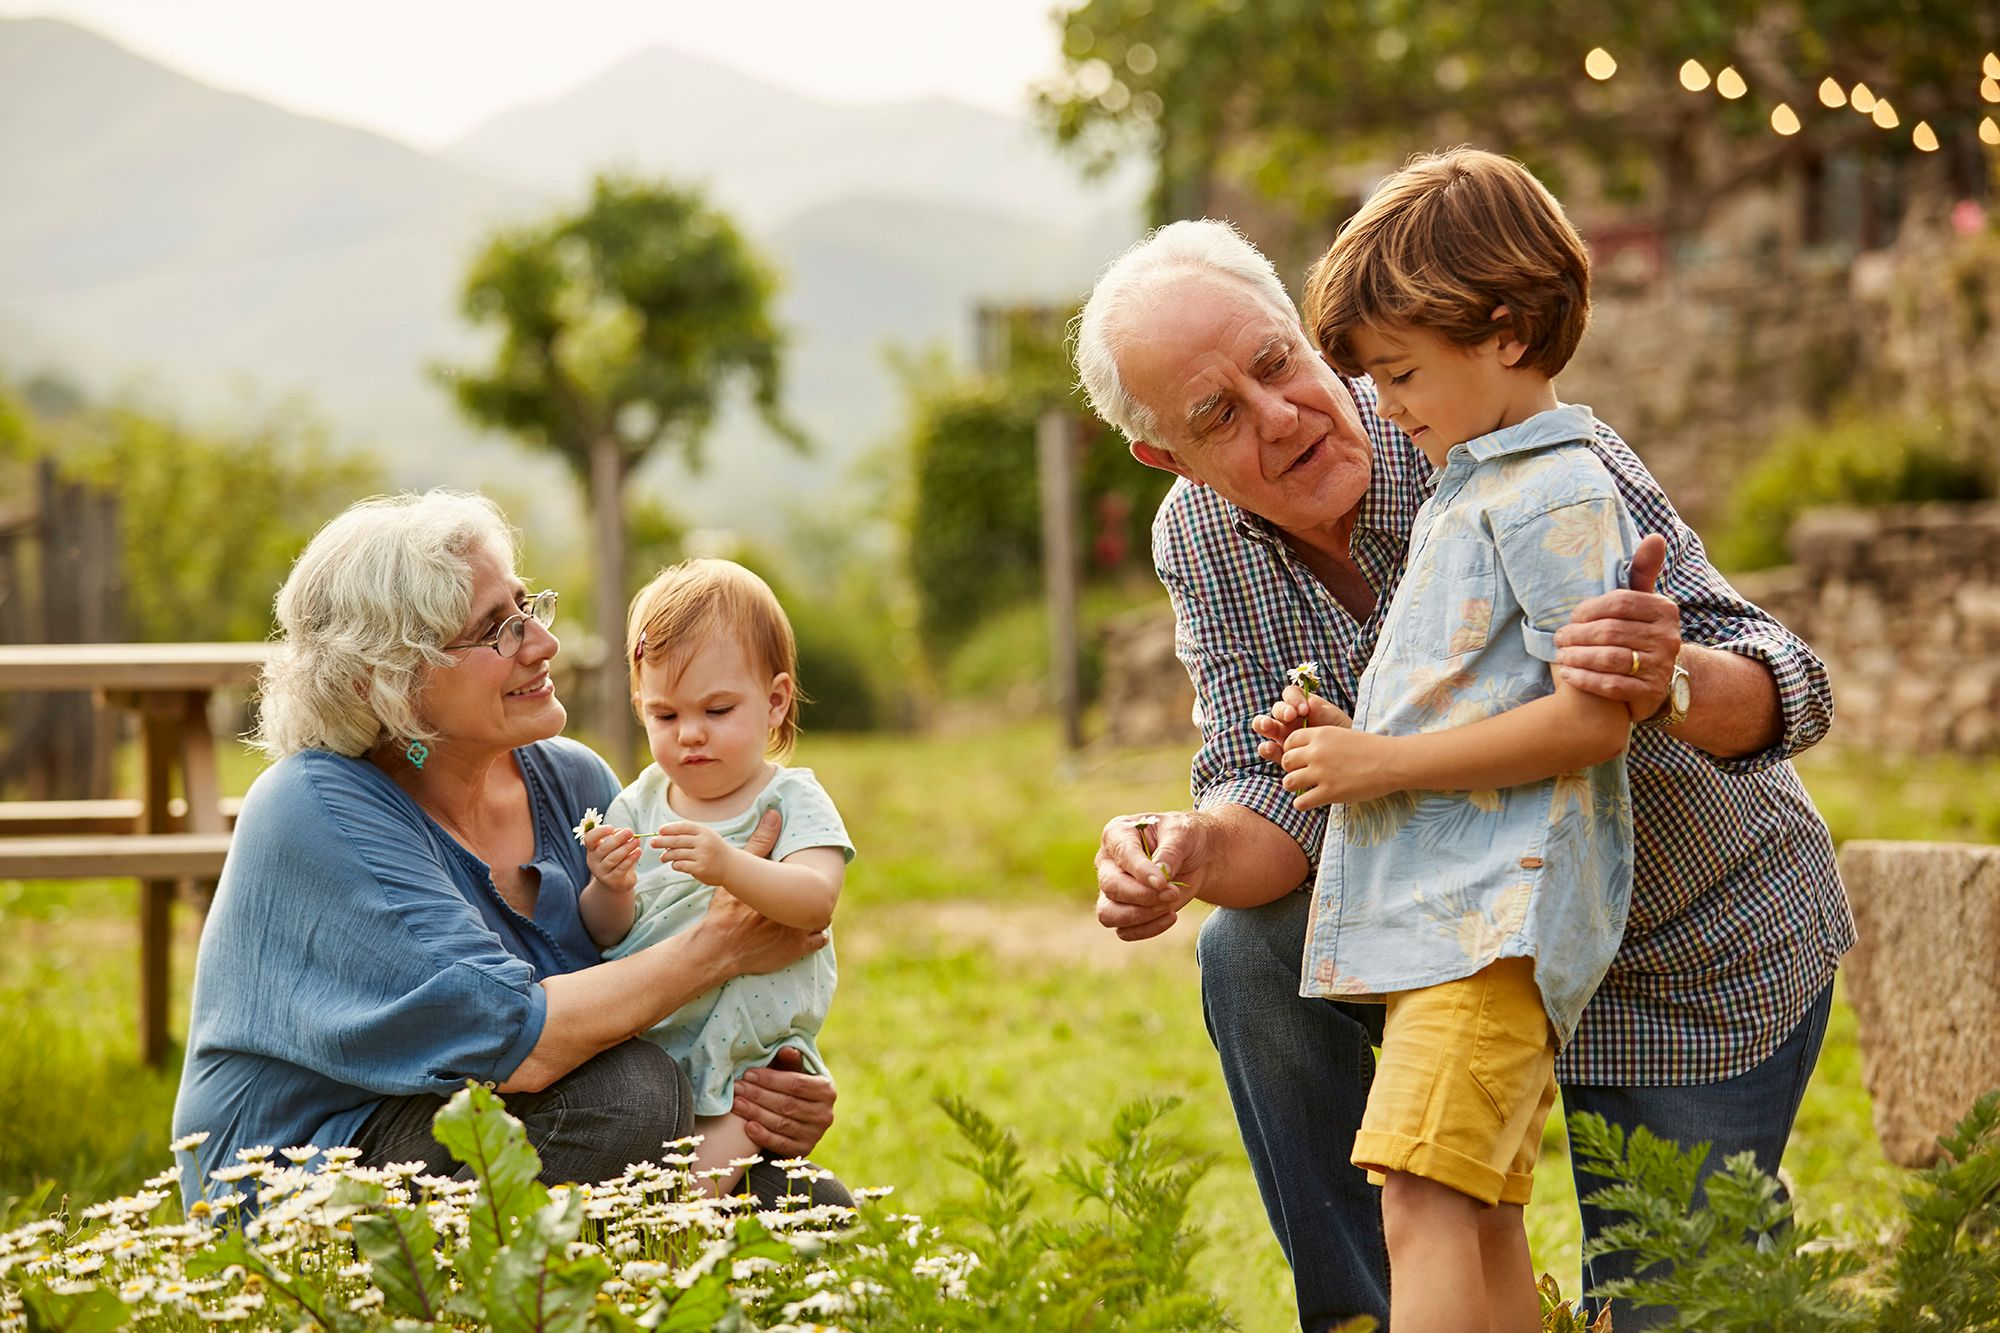 Do Grandparents Have a Right to Their Grandchildren?